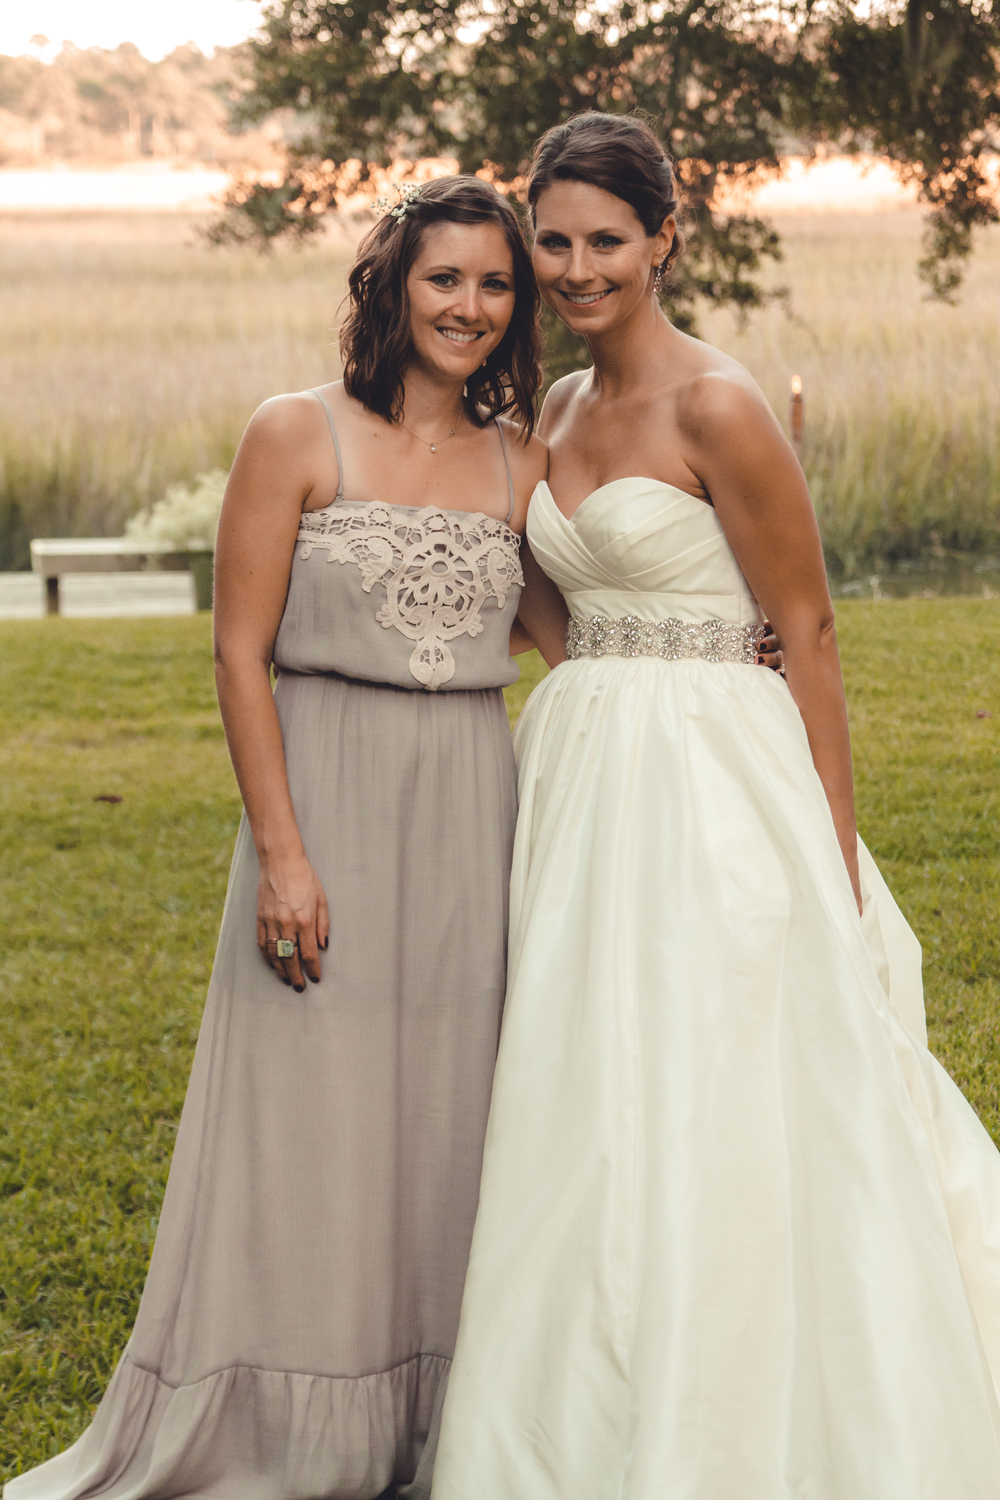 Lizzie and I at her wedding, which she amazingly planned in 4 months, from over 1000 miles away.